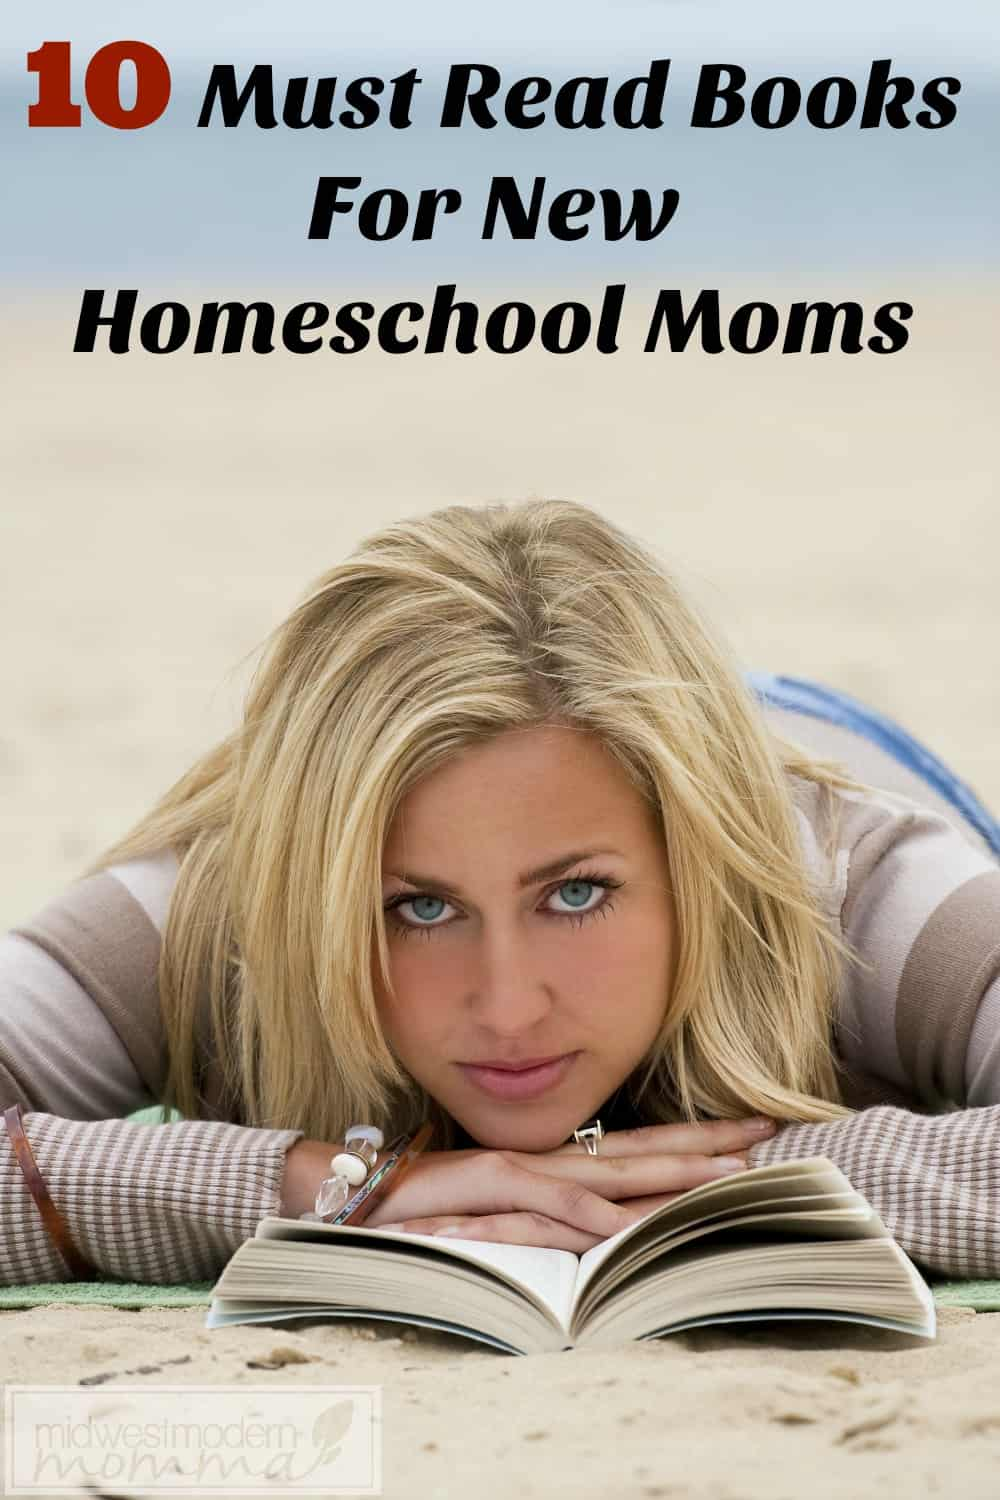 10 Must Read Books for New Homeschool Moms